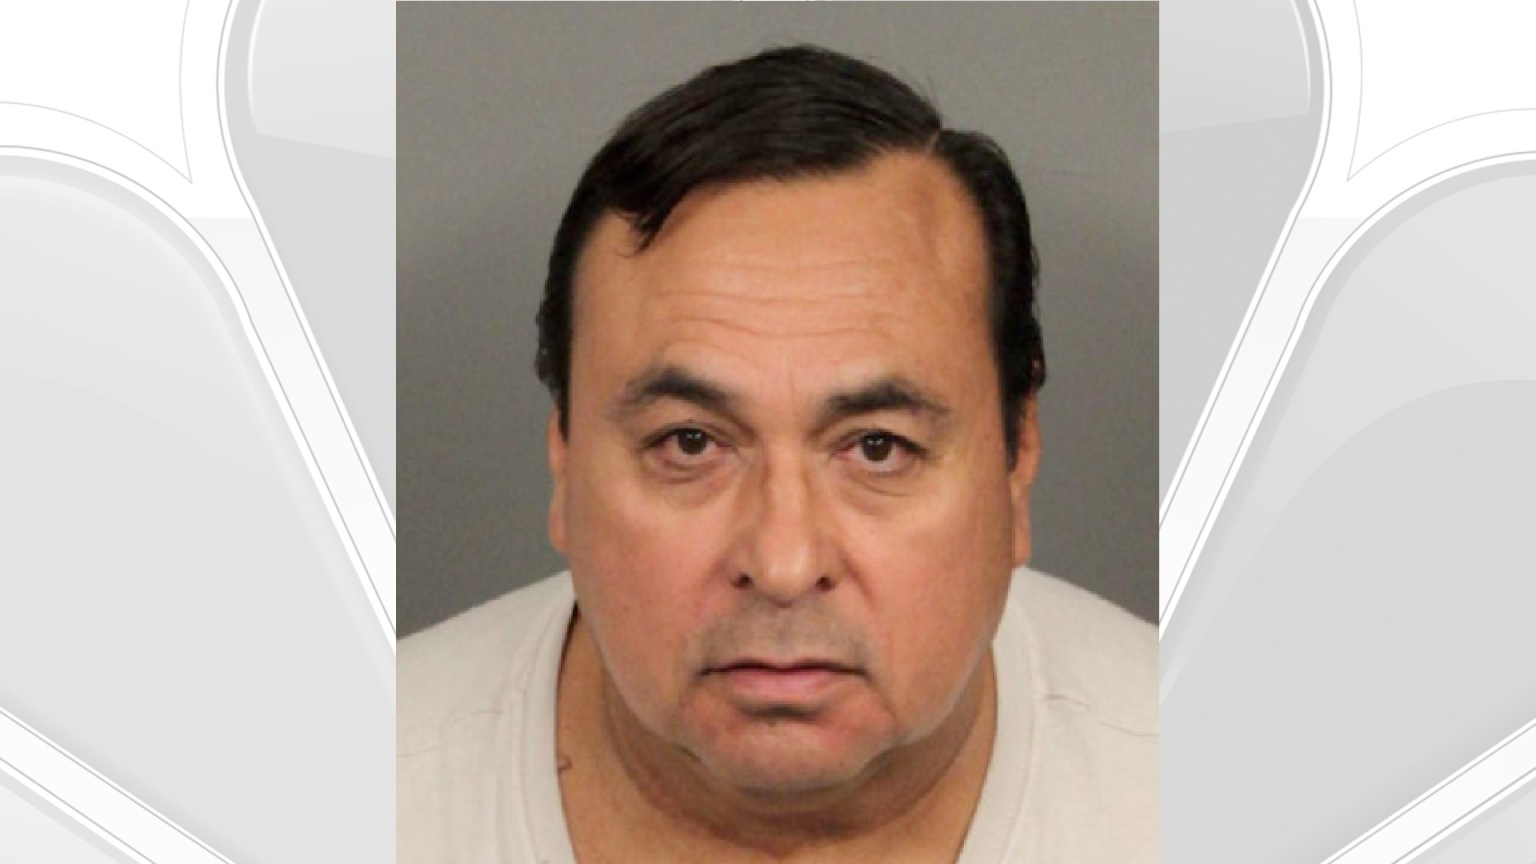 Coachella Valley School Bus Driver Pleads Guilty to Molesting 11-Year-Old